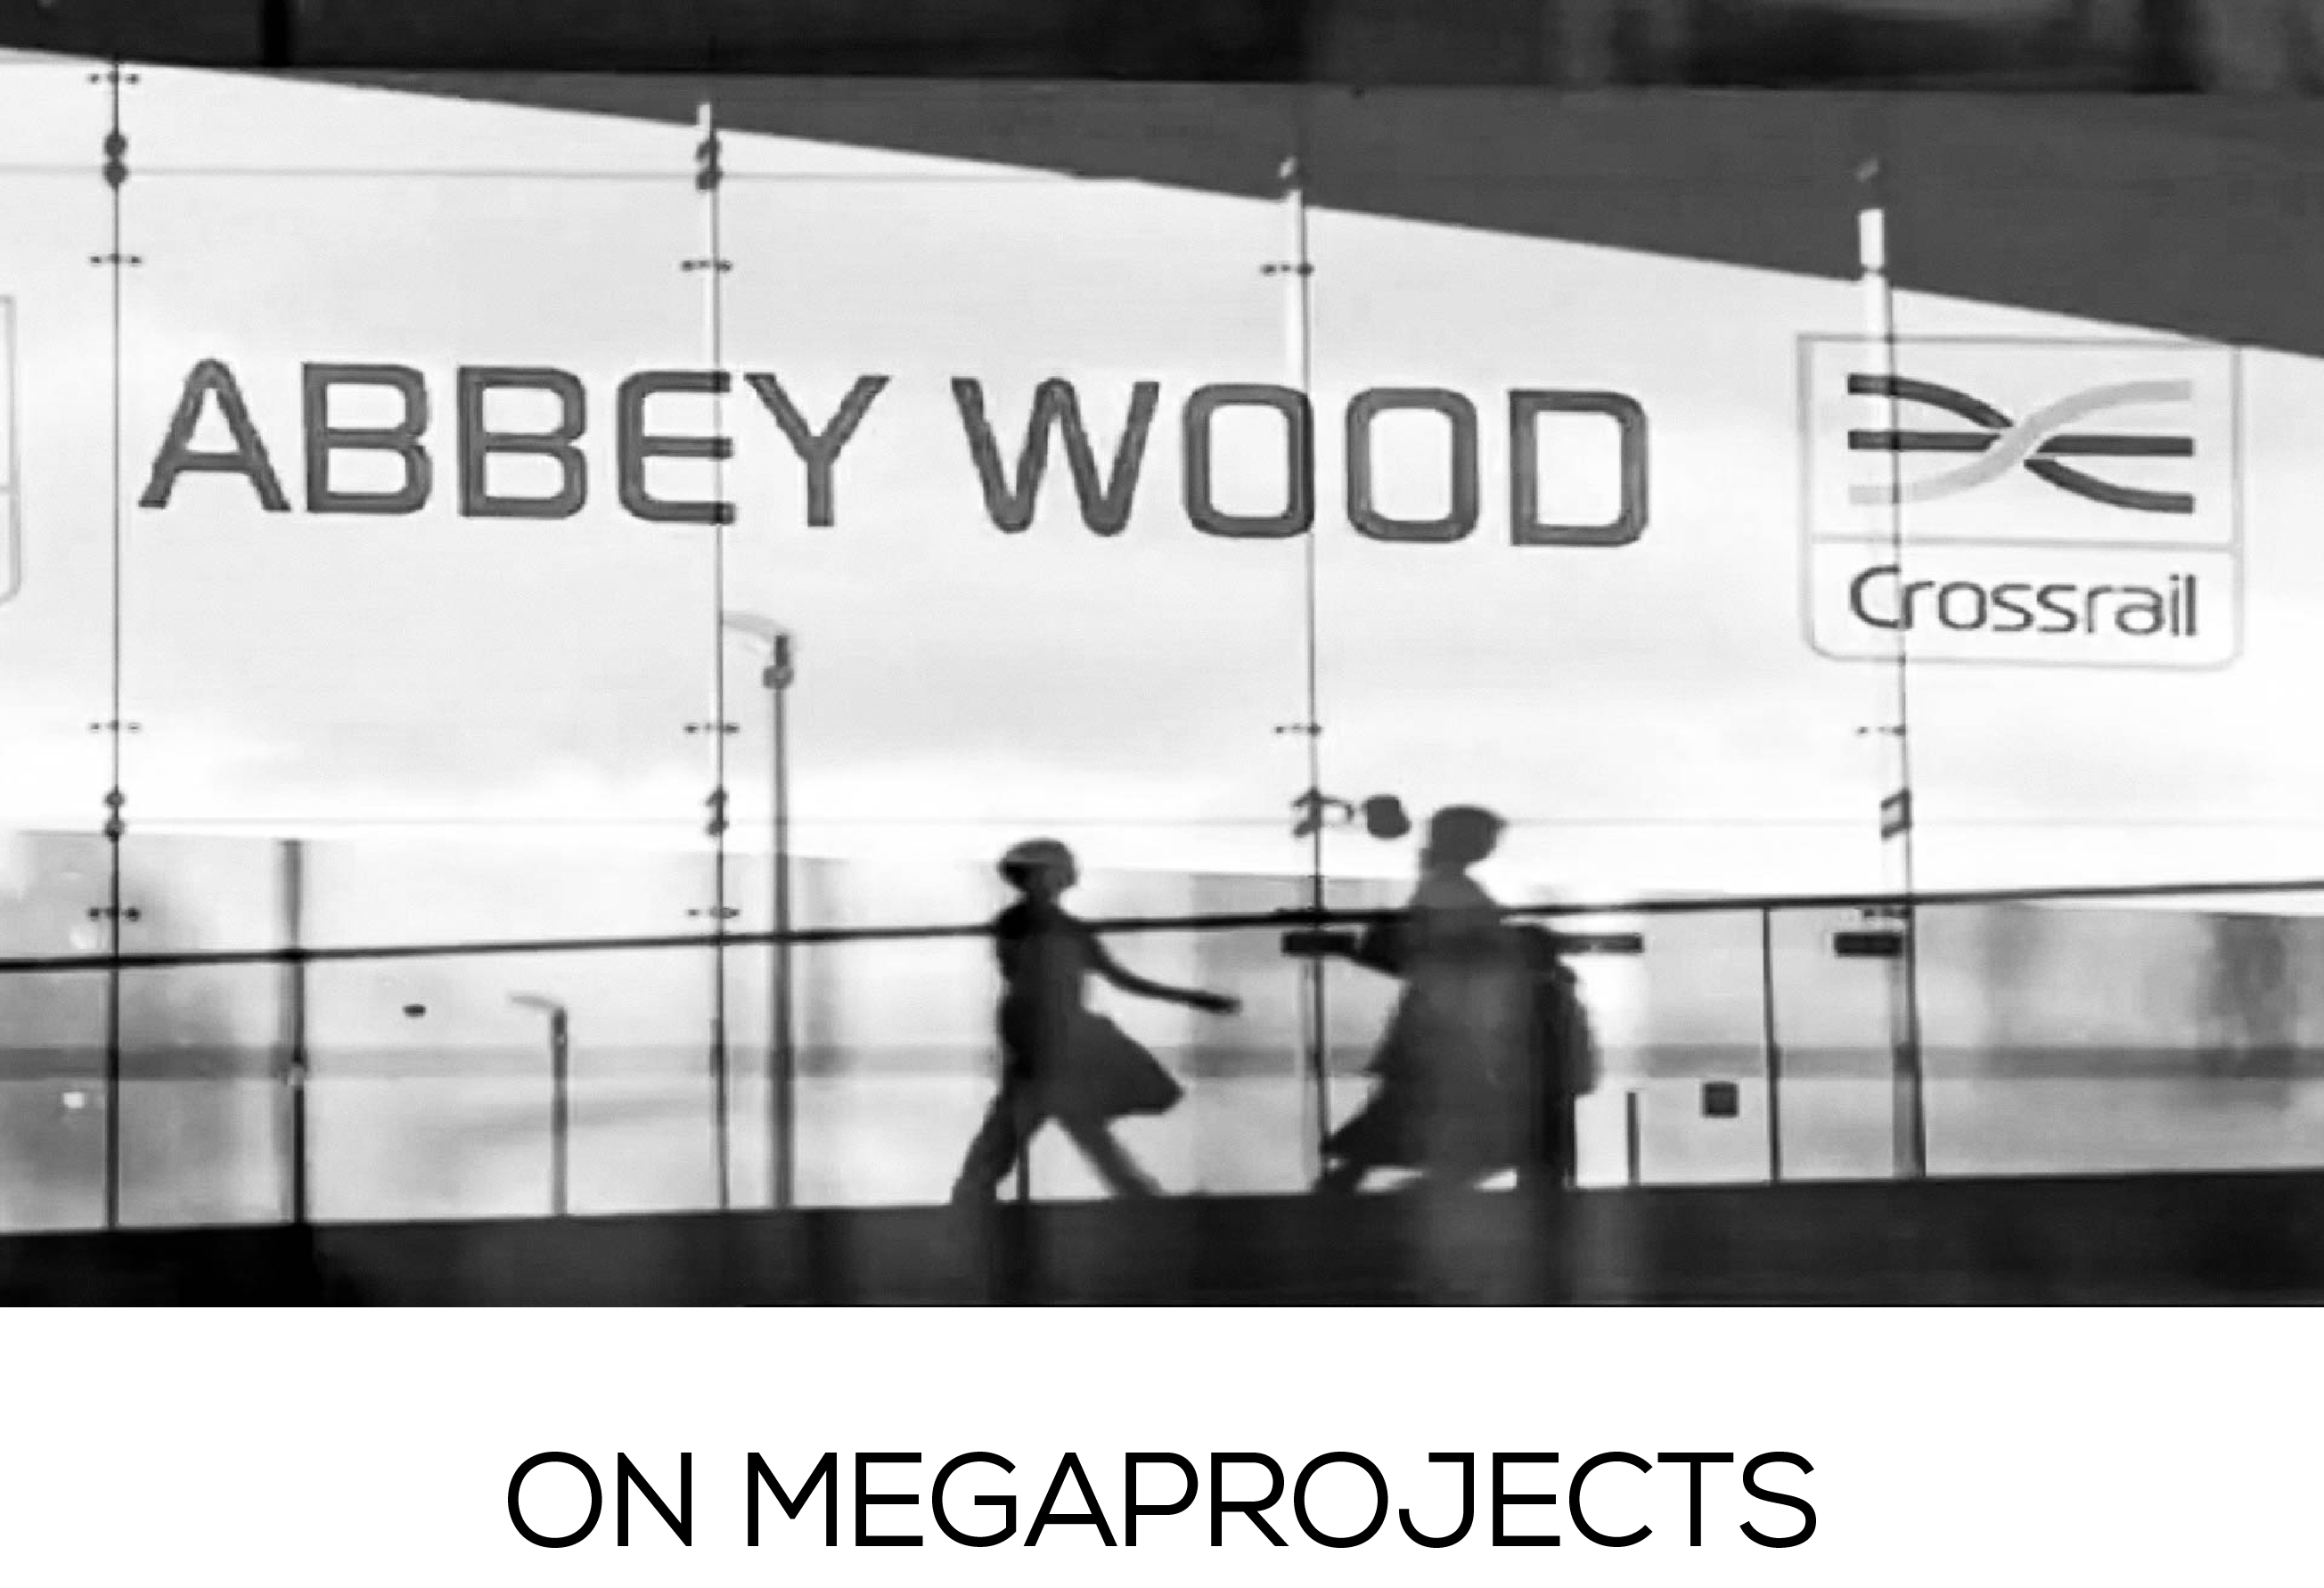 On Megaprojects